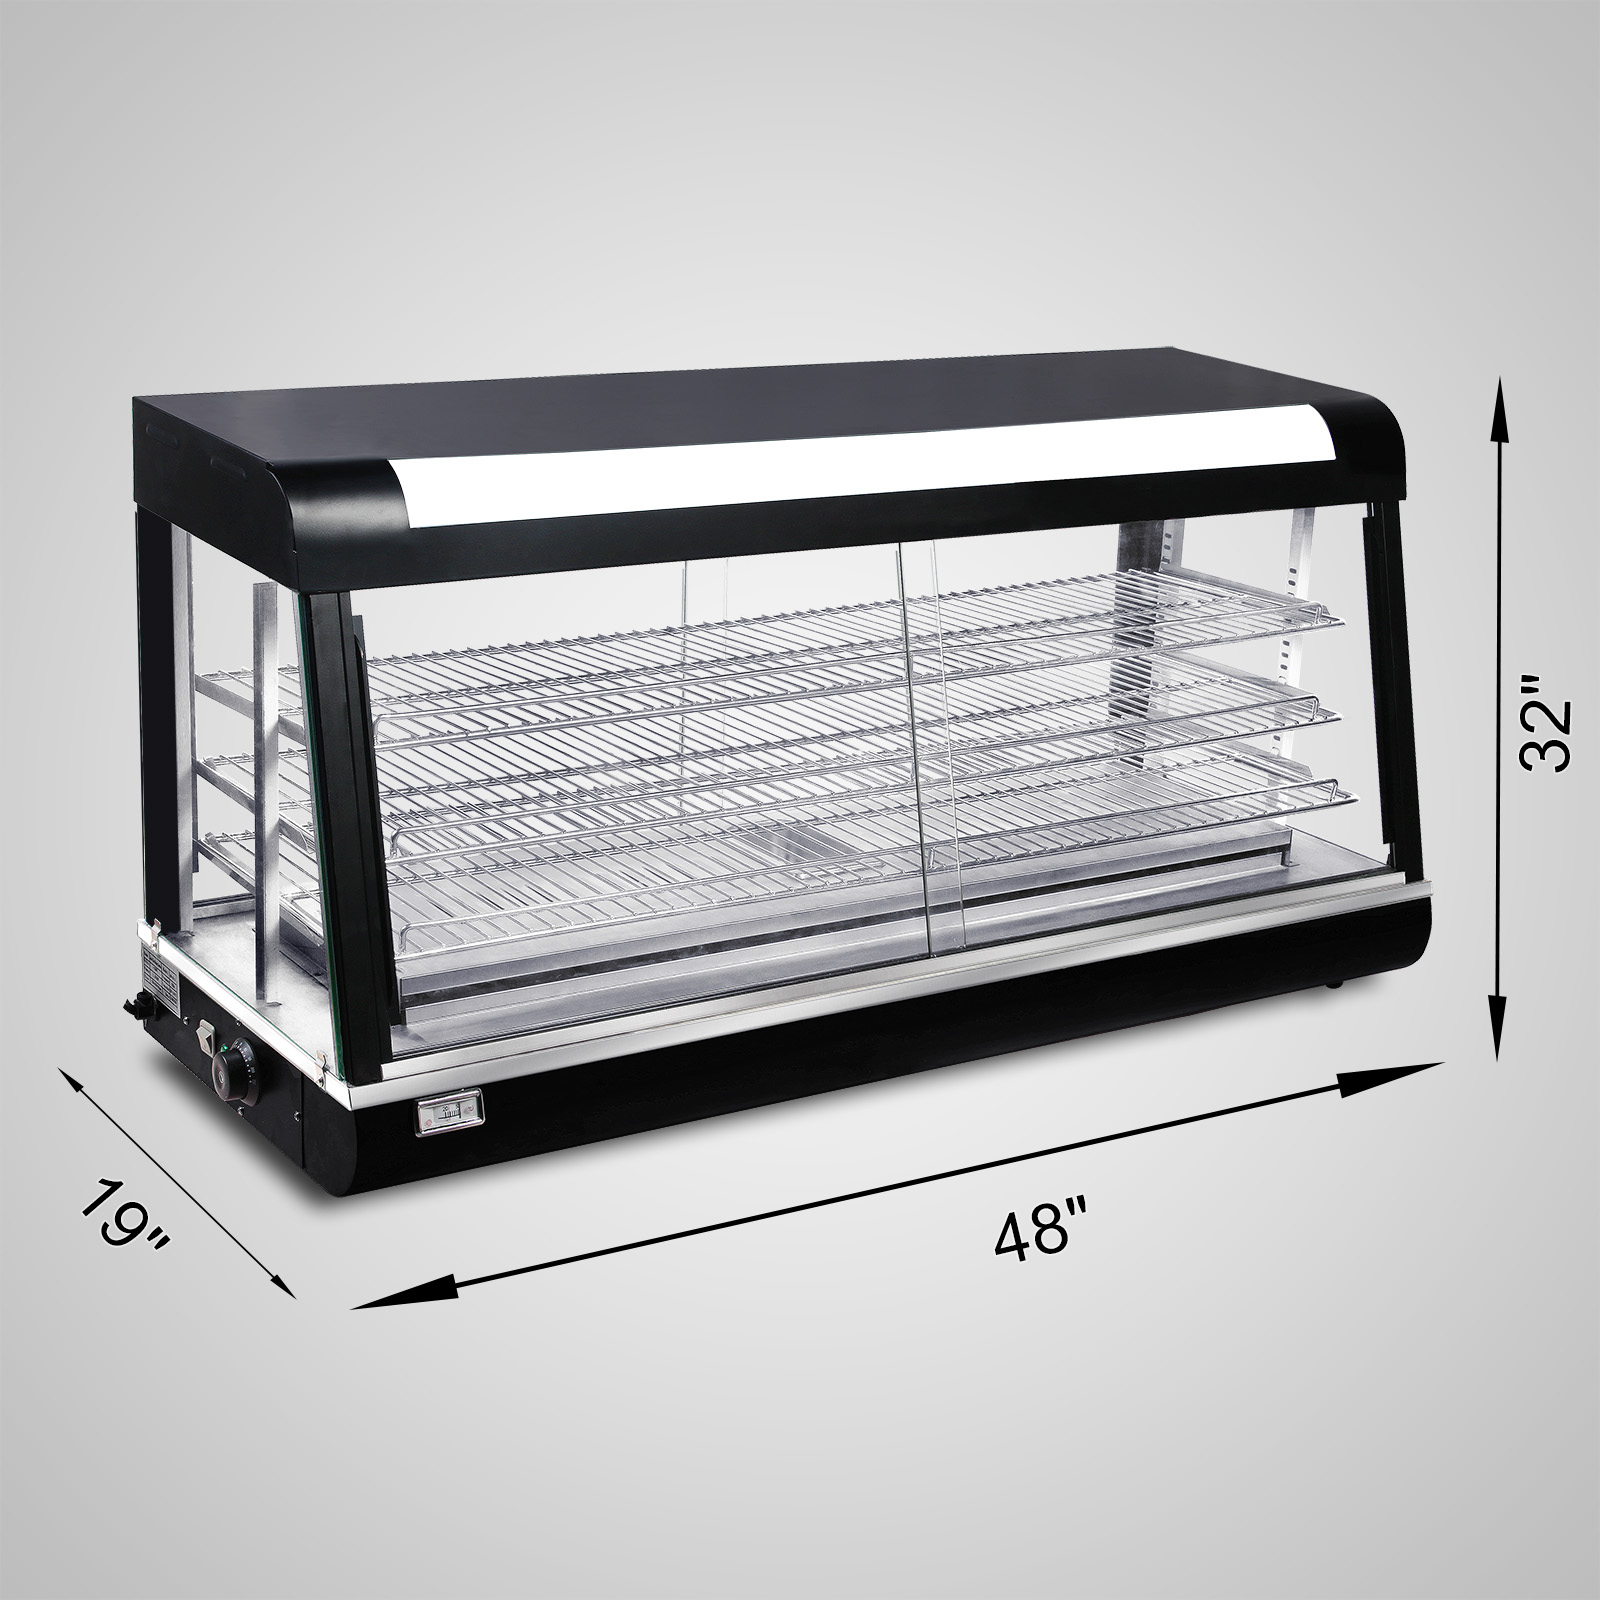 Countertop Pizza Warmer Commercial Food Warmer Pizza Pastry Hot Countertop Display